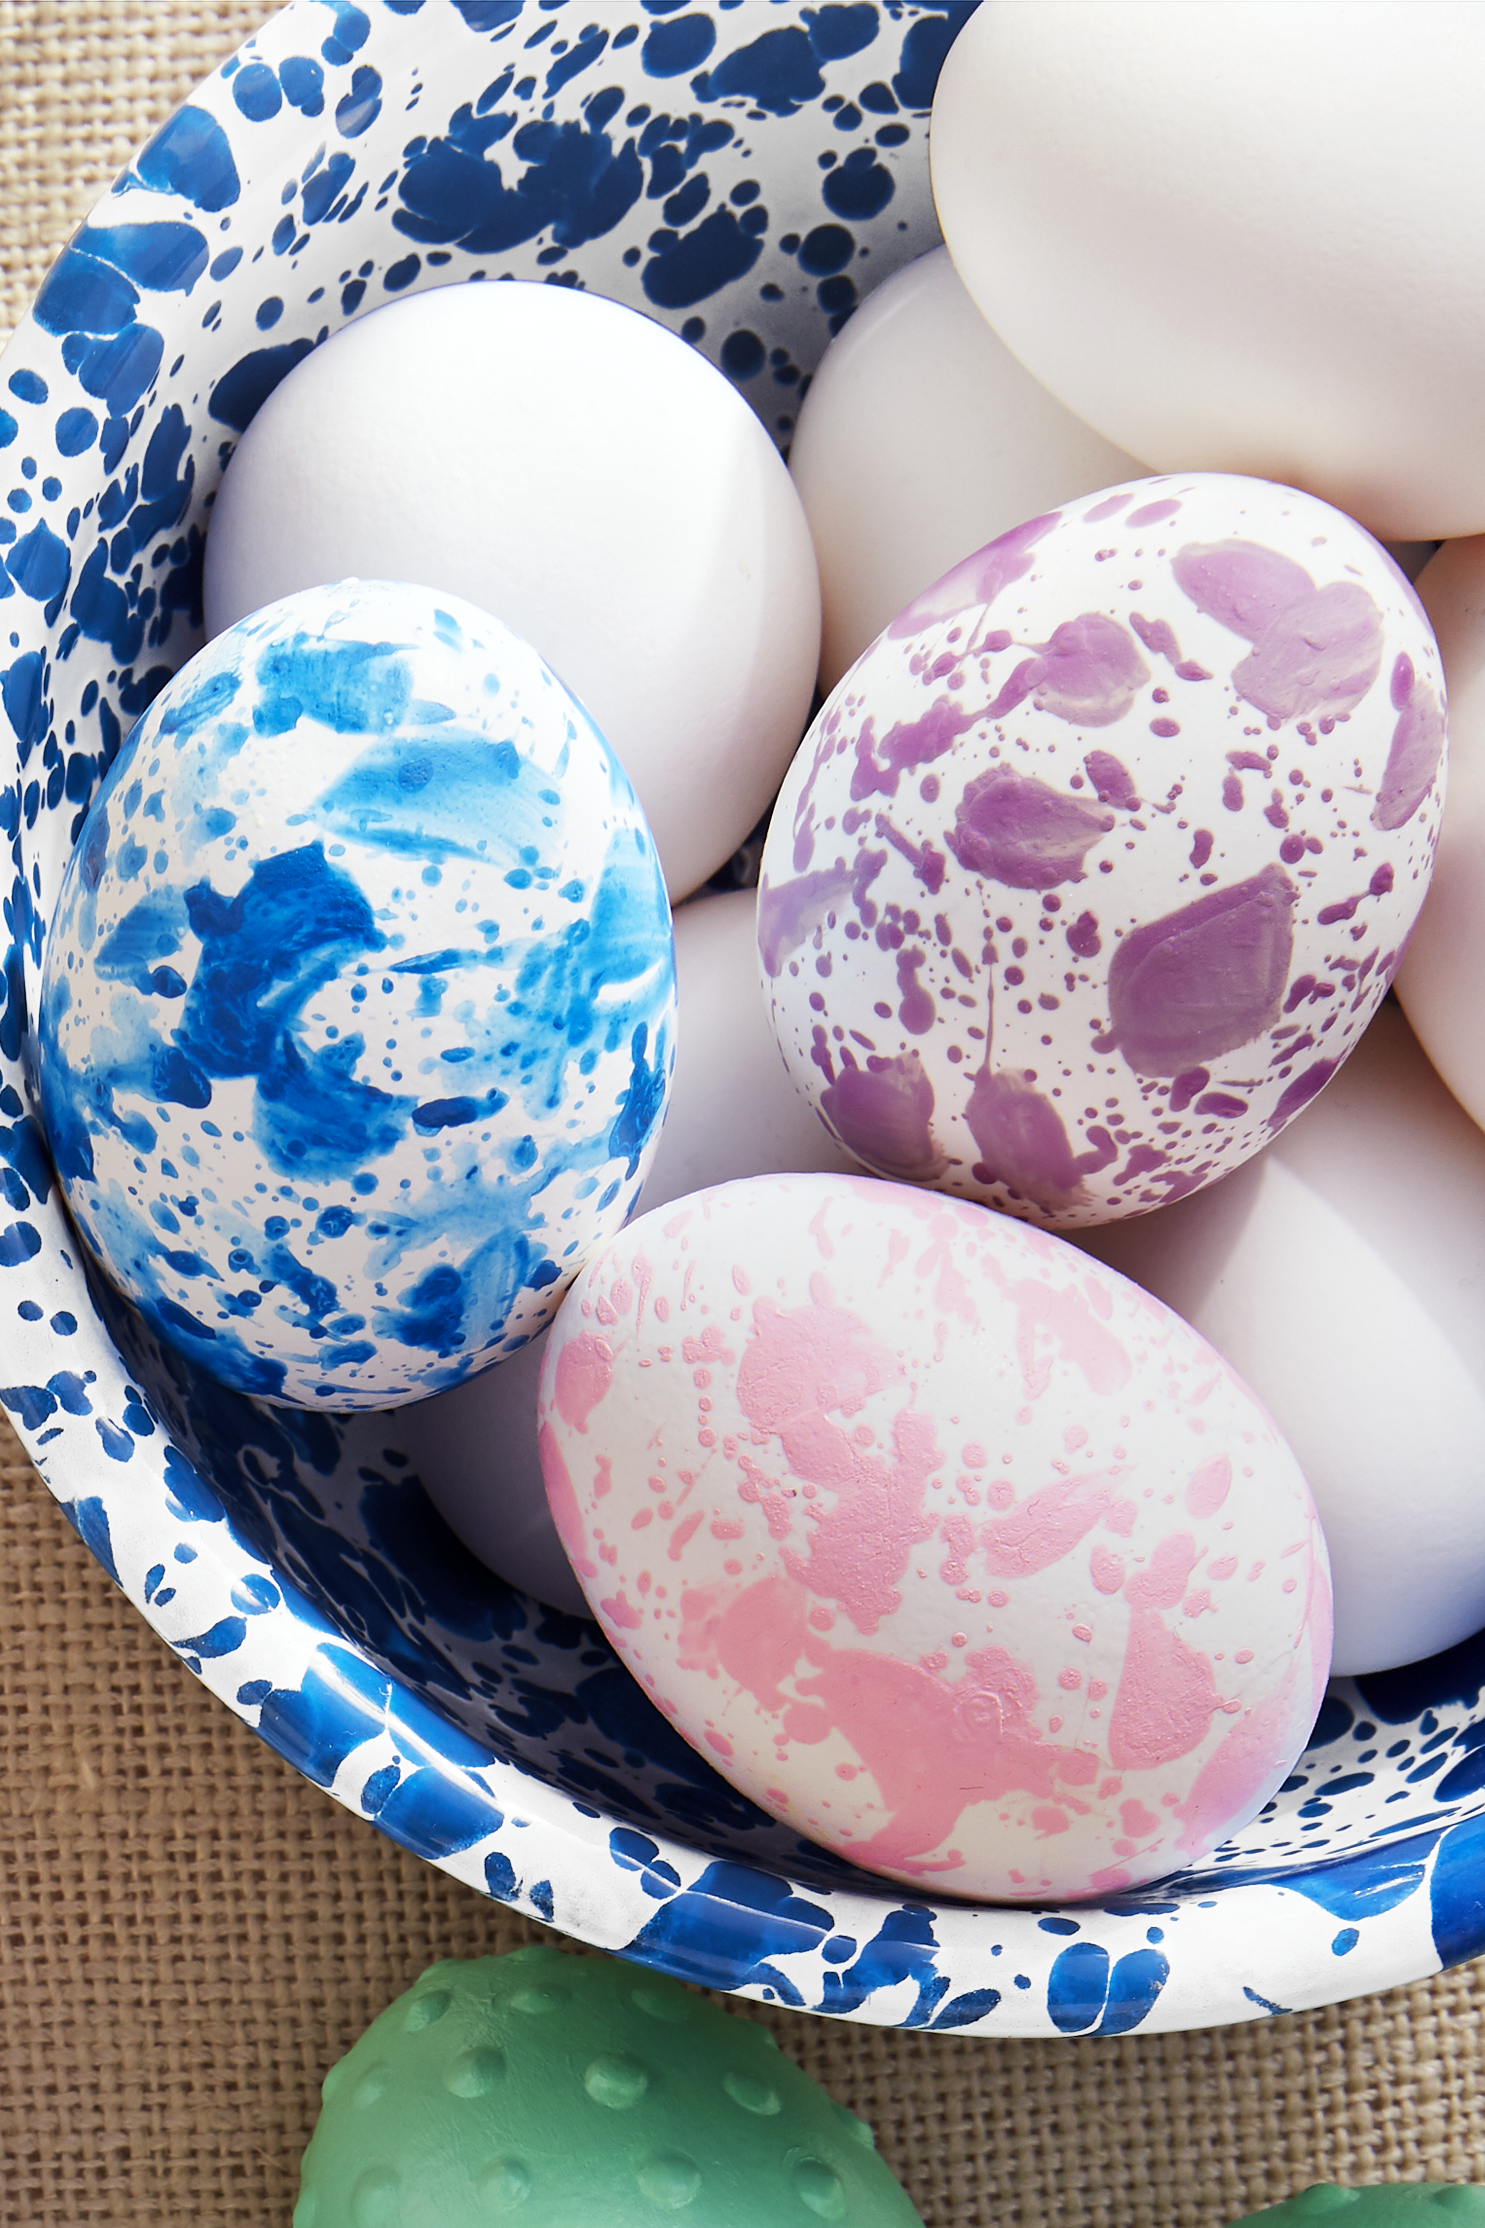 60+ Fun Easter Egg Designs - Creative Ideas for Easter Egg ...